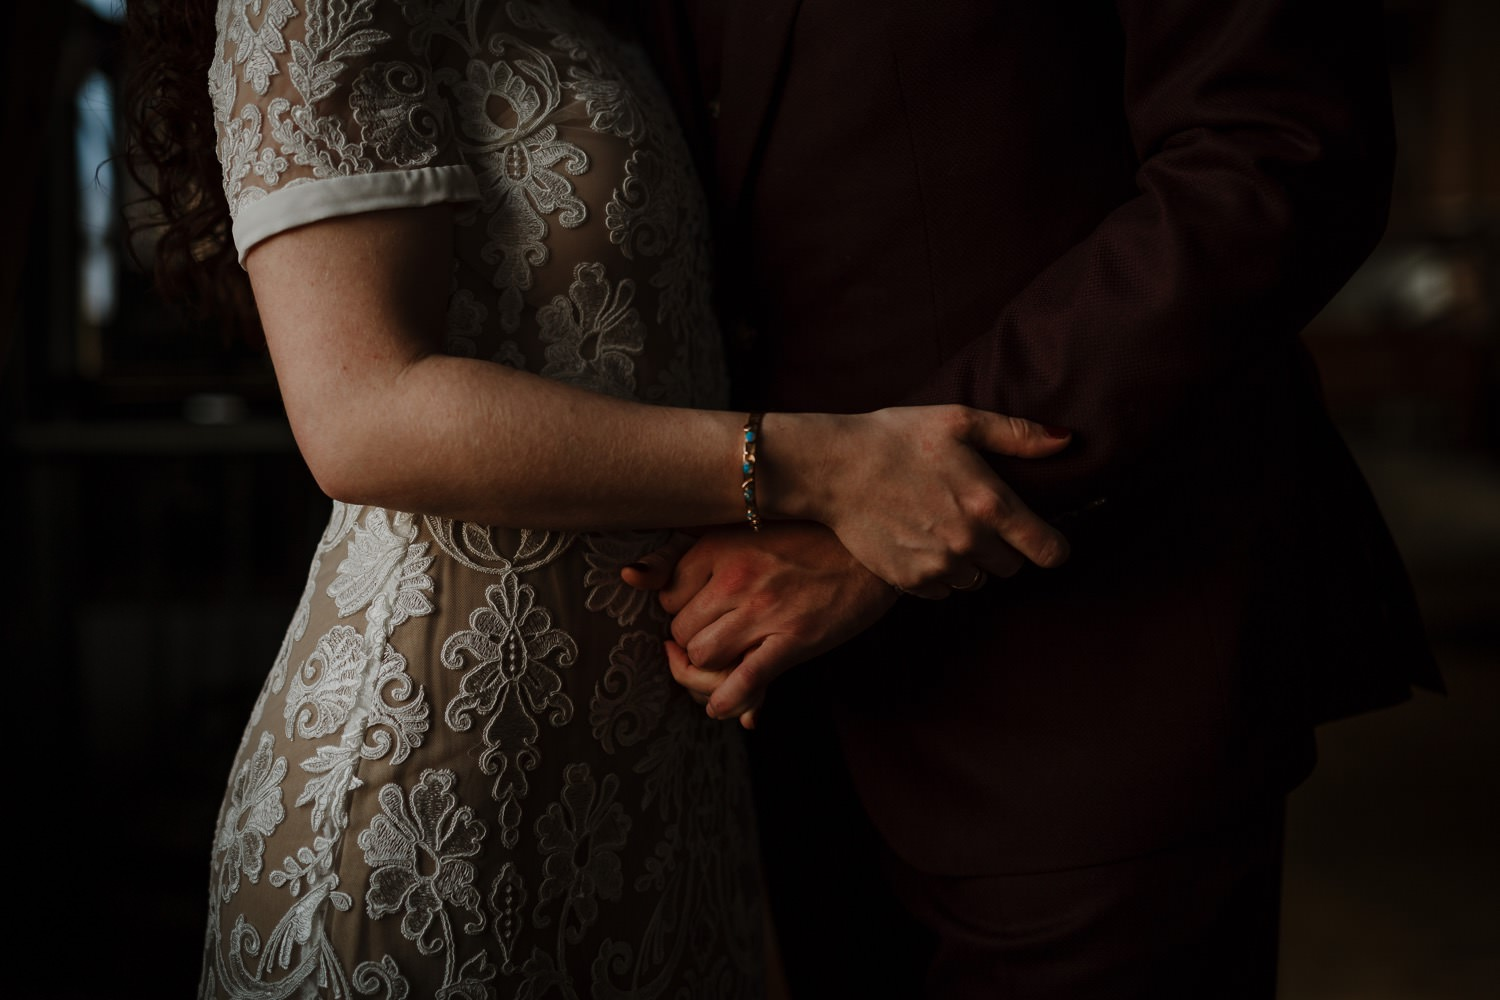 Bride and groom embrace their hands at salvage one during the portrait shoot